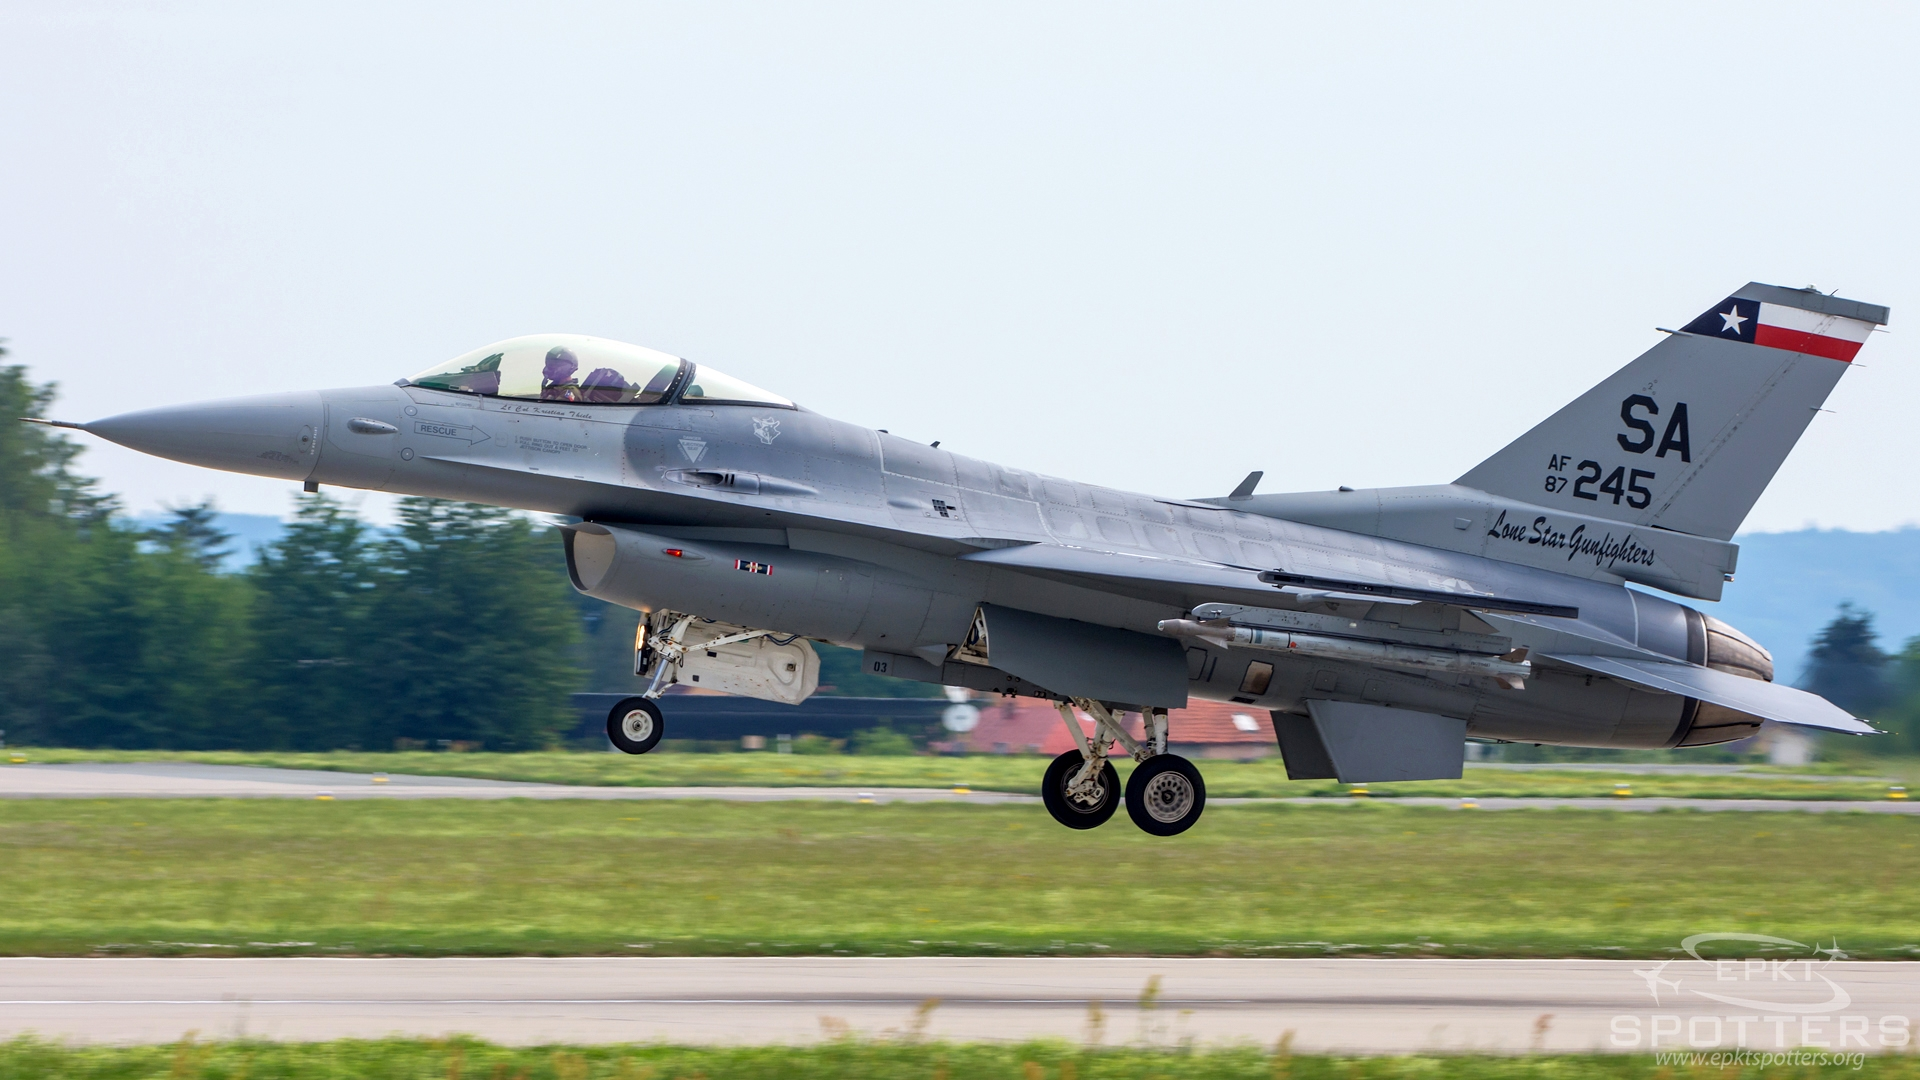 87-0245 - Lockheed Martin F-16-C Fighting Falcon  (United States - US Air Force (USAF)) / Caslav - Caslav Czech Republic [LKCV/]